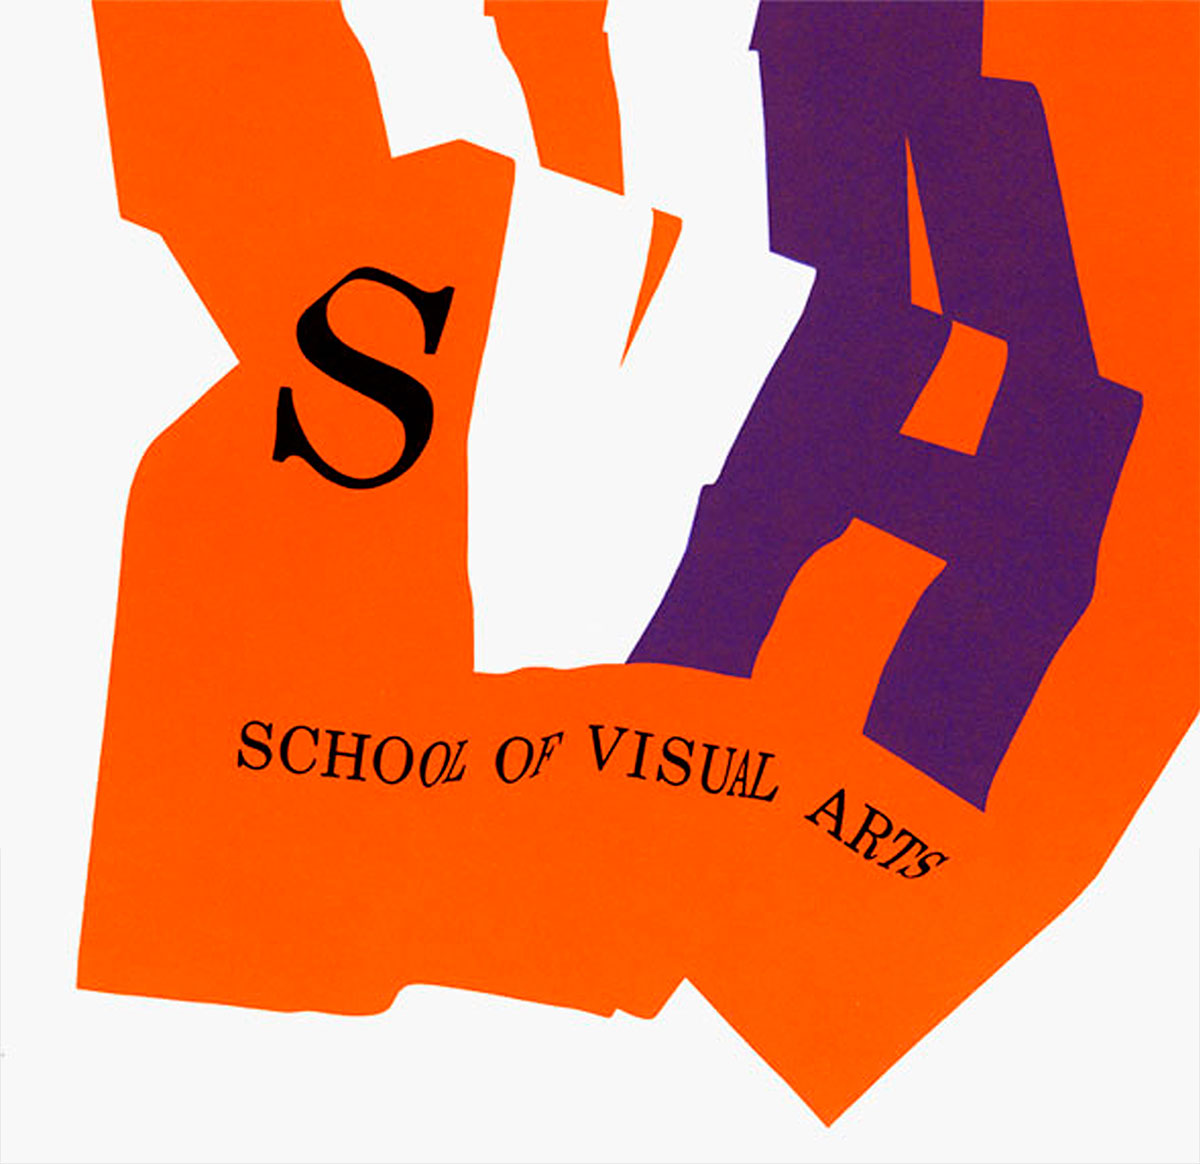 Georges-Tscherny-SVA-School-of-visual-arts-new-york-02